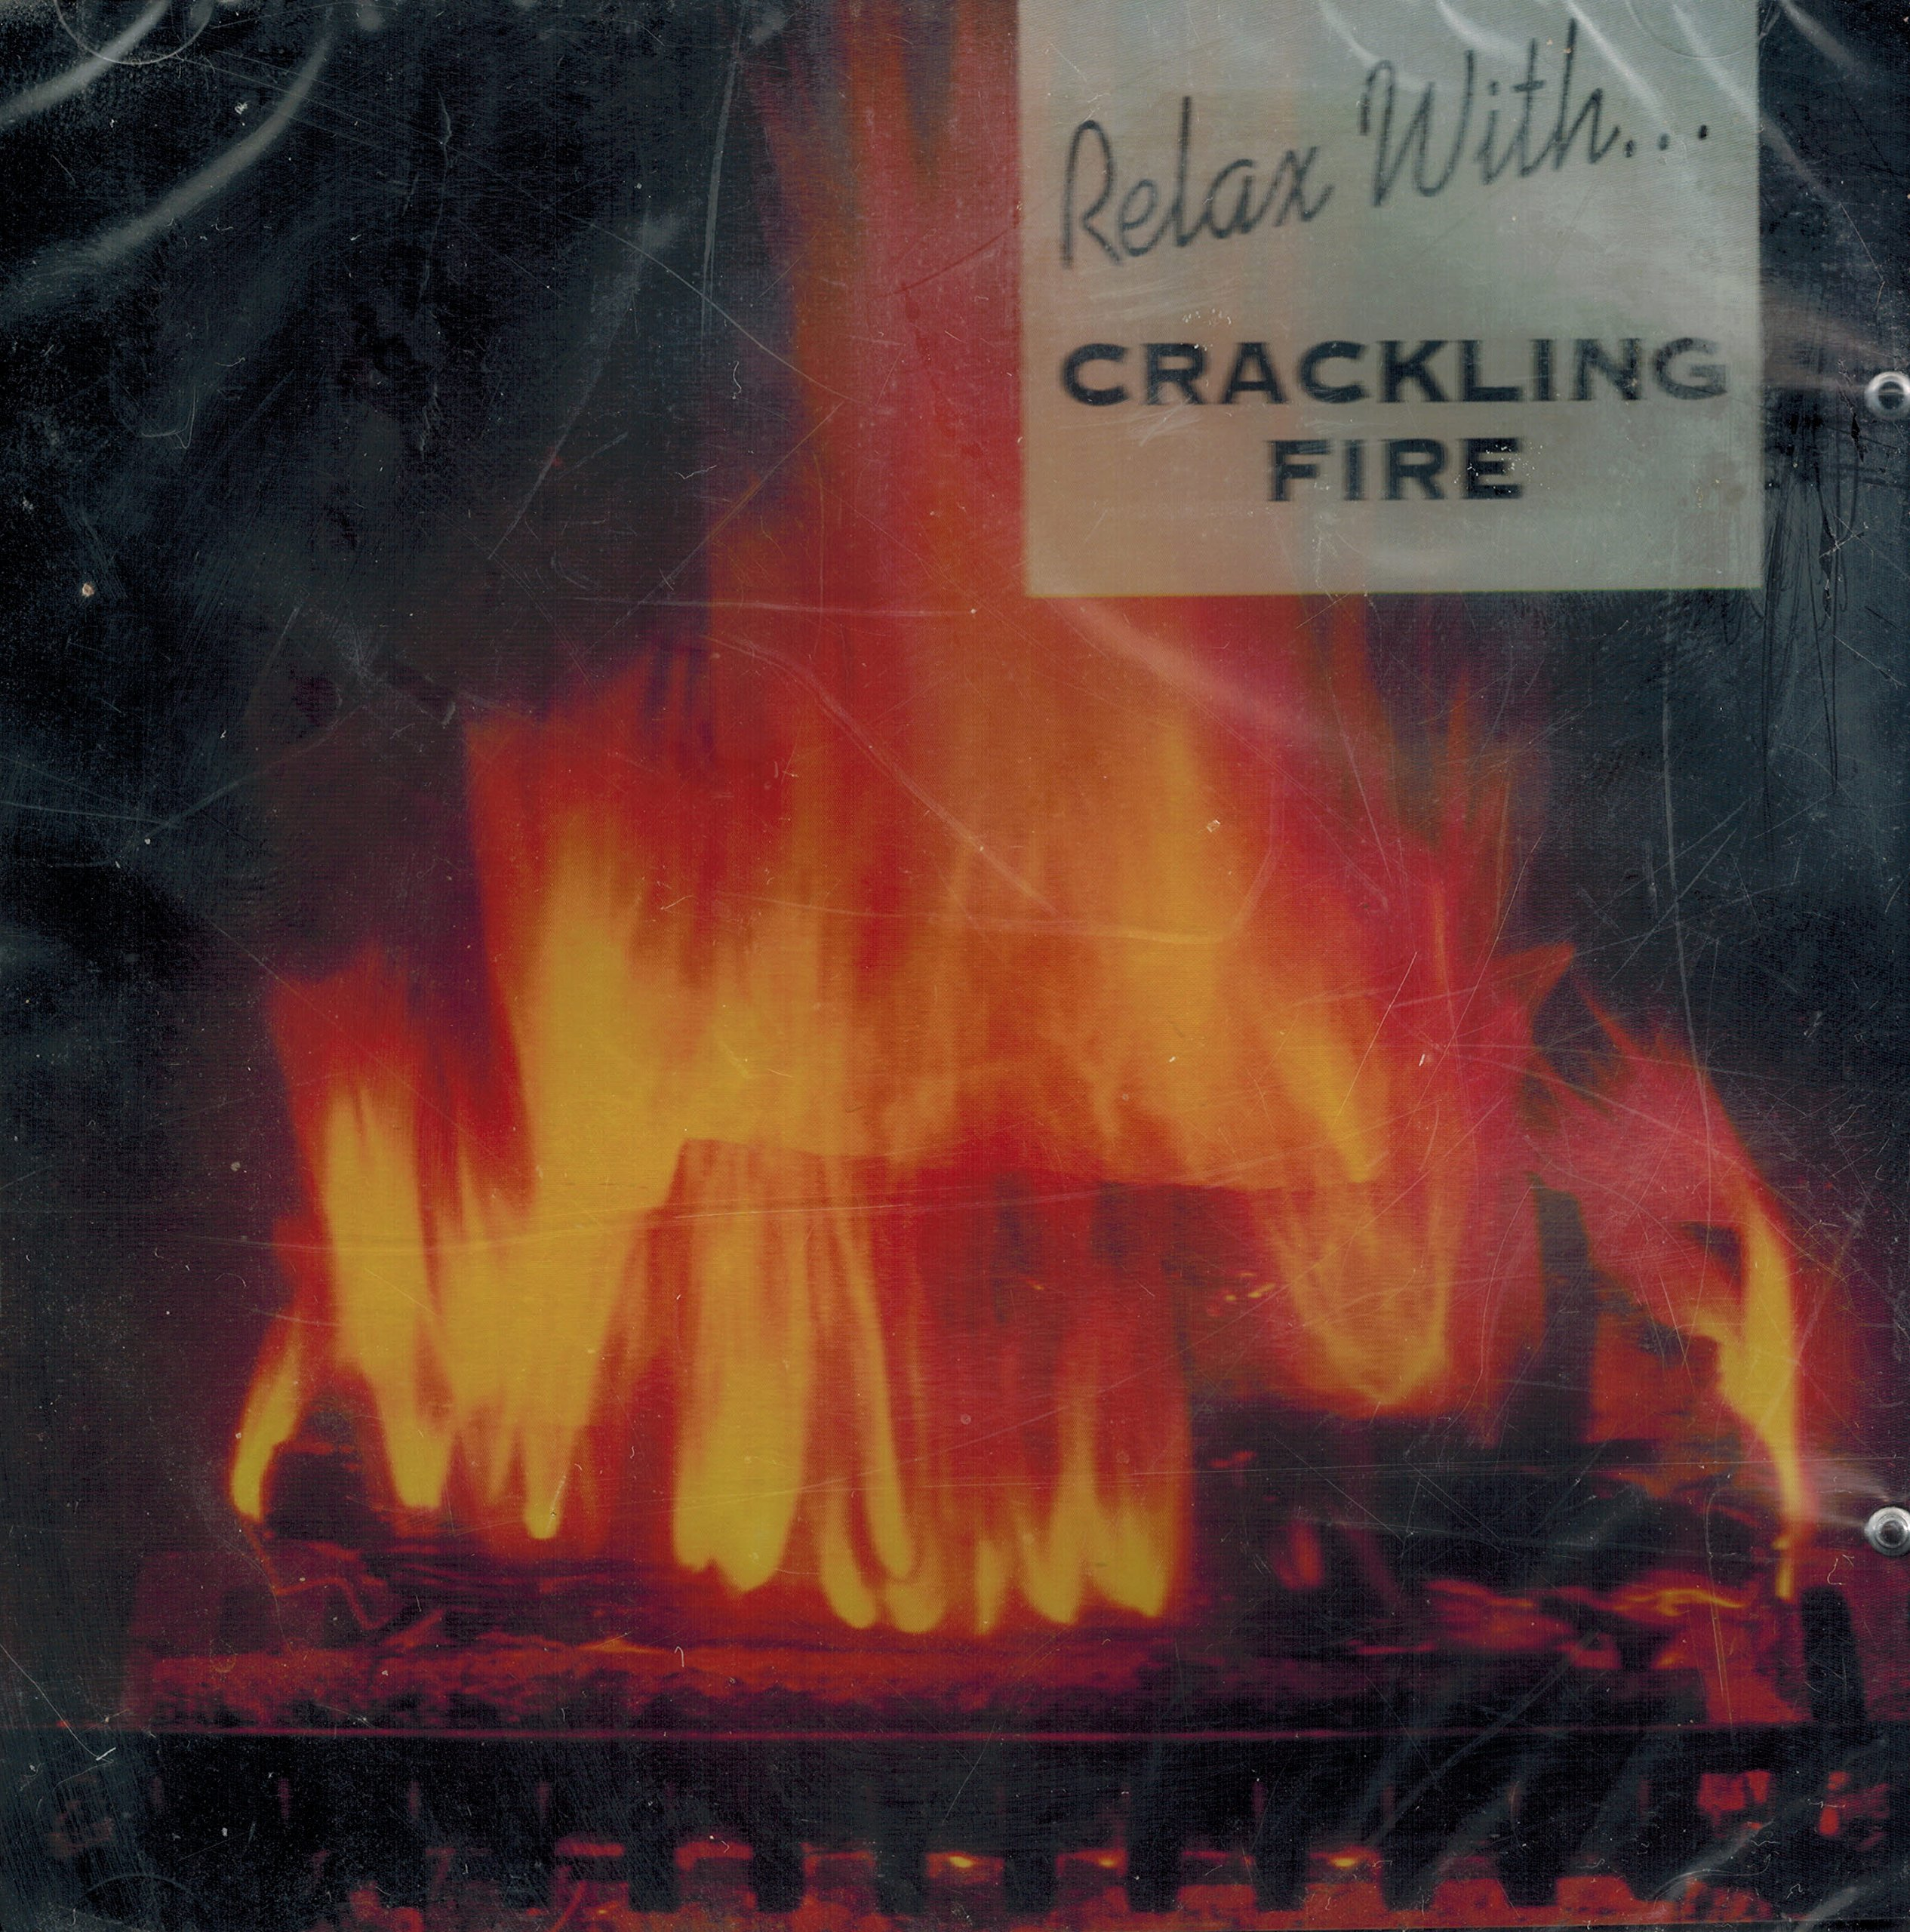 Relax With Crackling Fire by